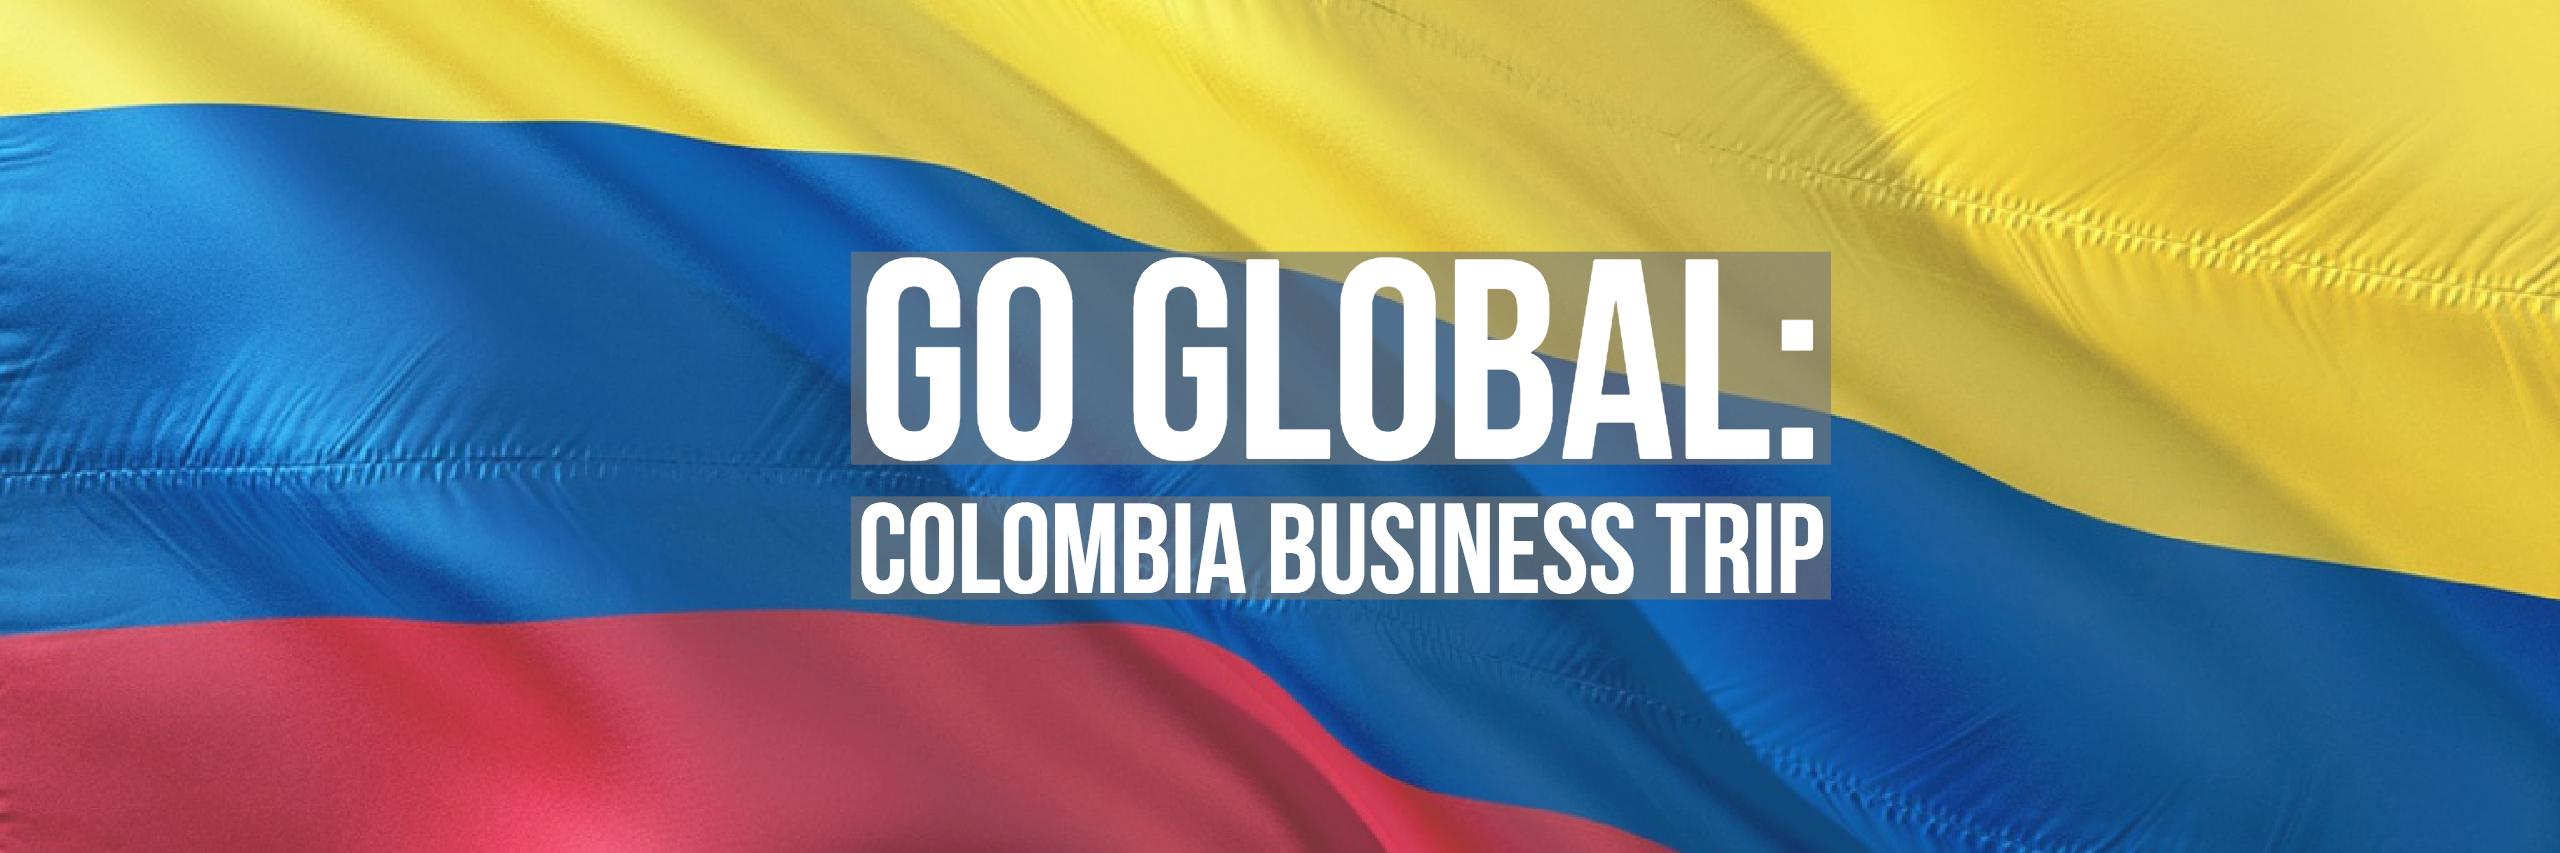 Go Global: Colombia Business Trip Scheduled for February